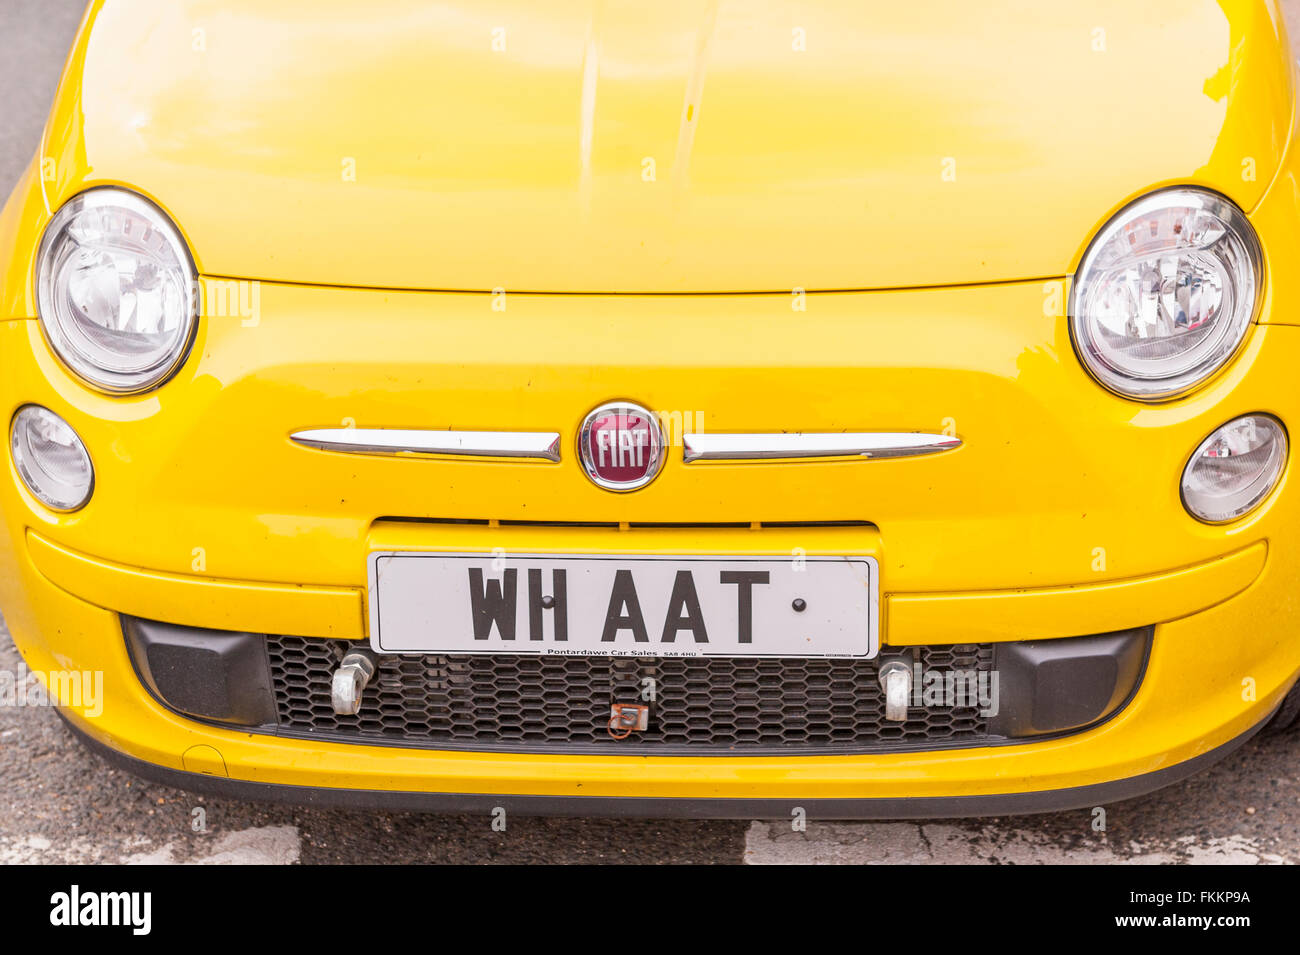 An amusing private personalised number plate in the Uk - Stock Image